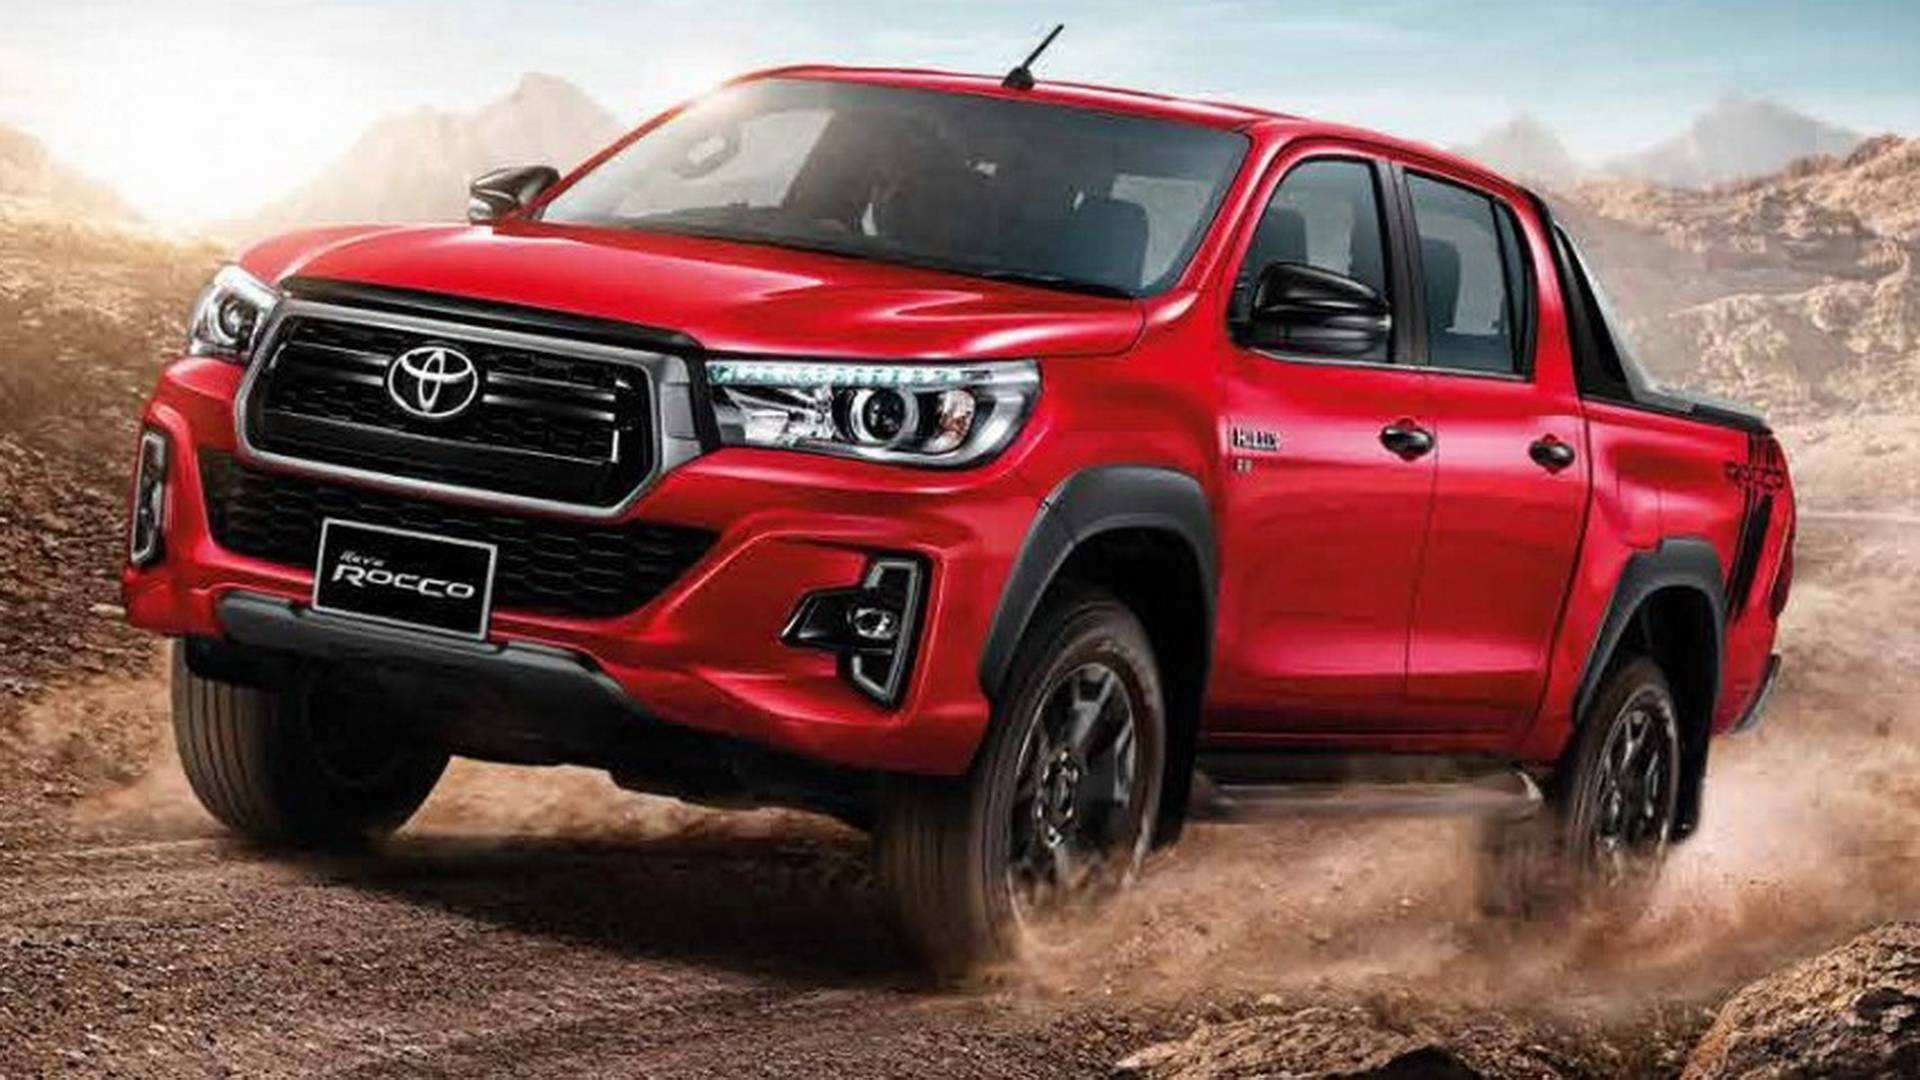 75 The Best Toyota Hilux 2019 Facelift Concept Images for Best Toyota Hilux 2019 Facelift Concept